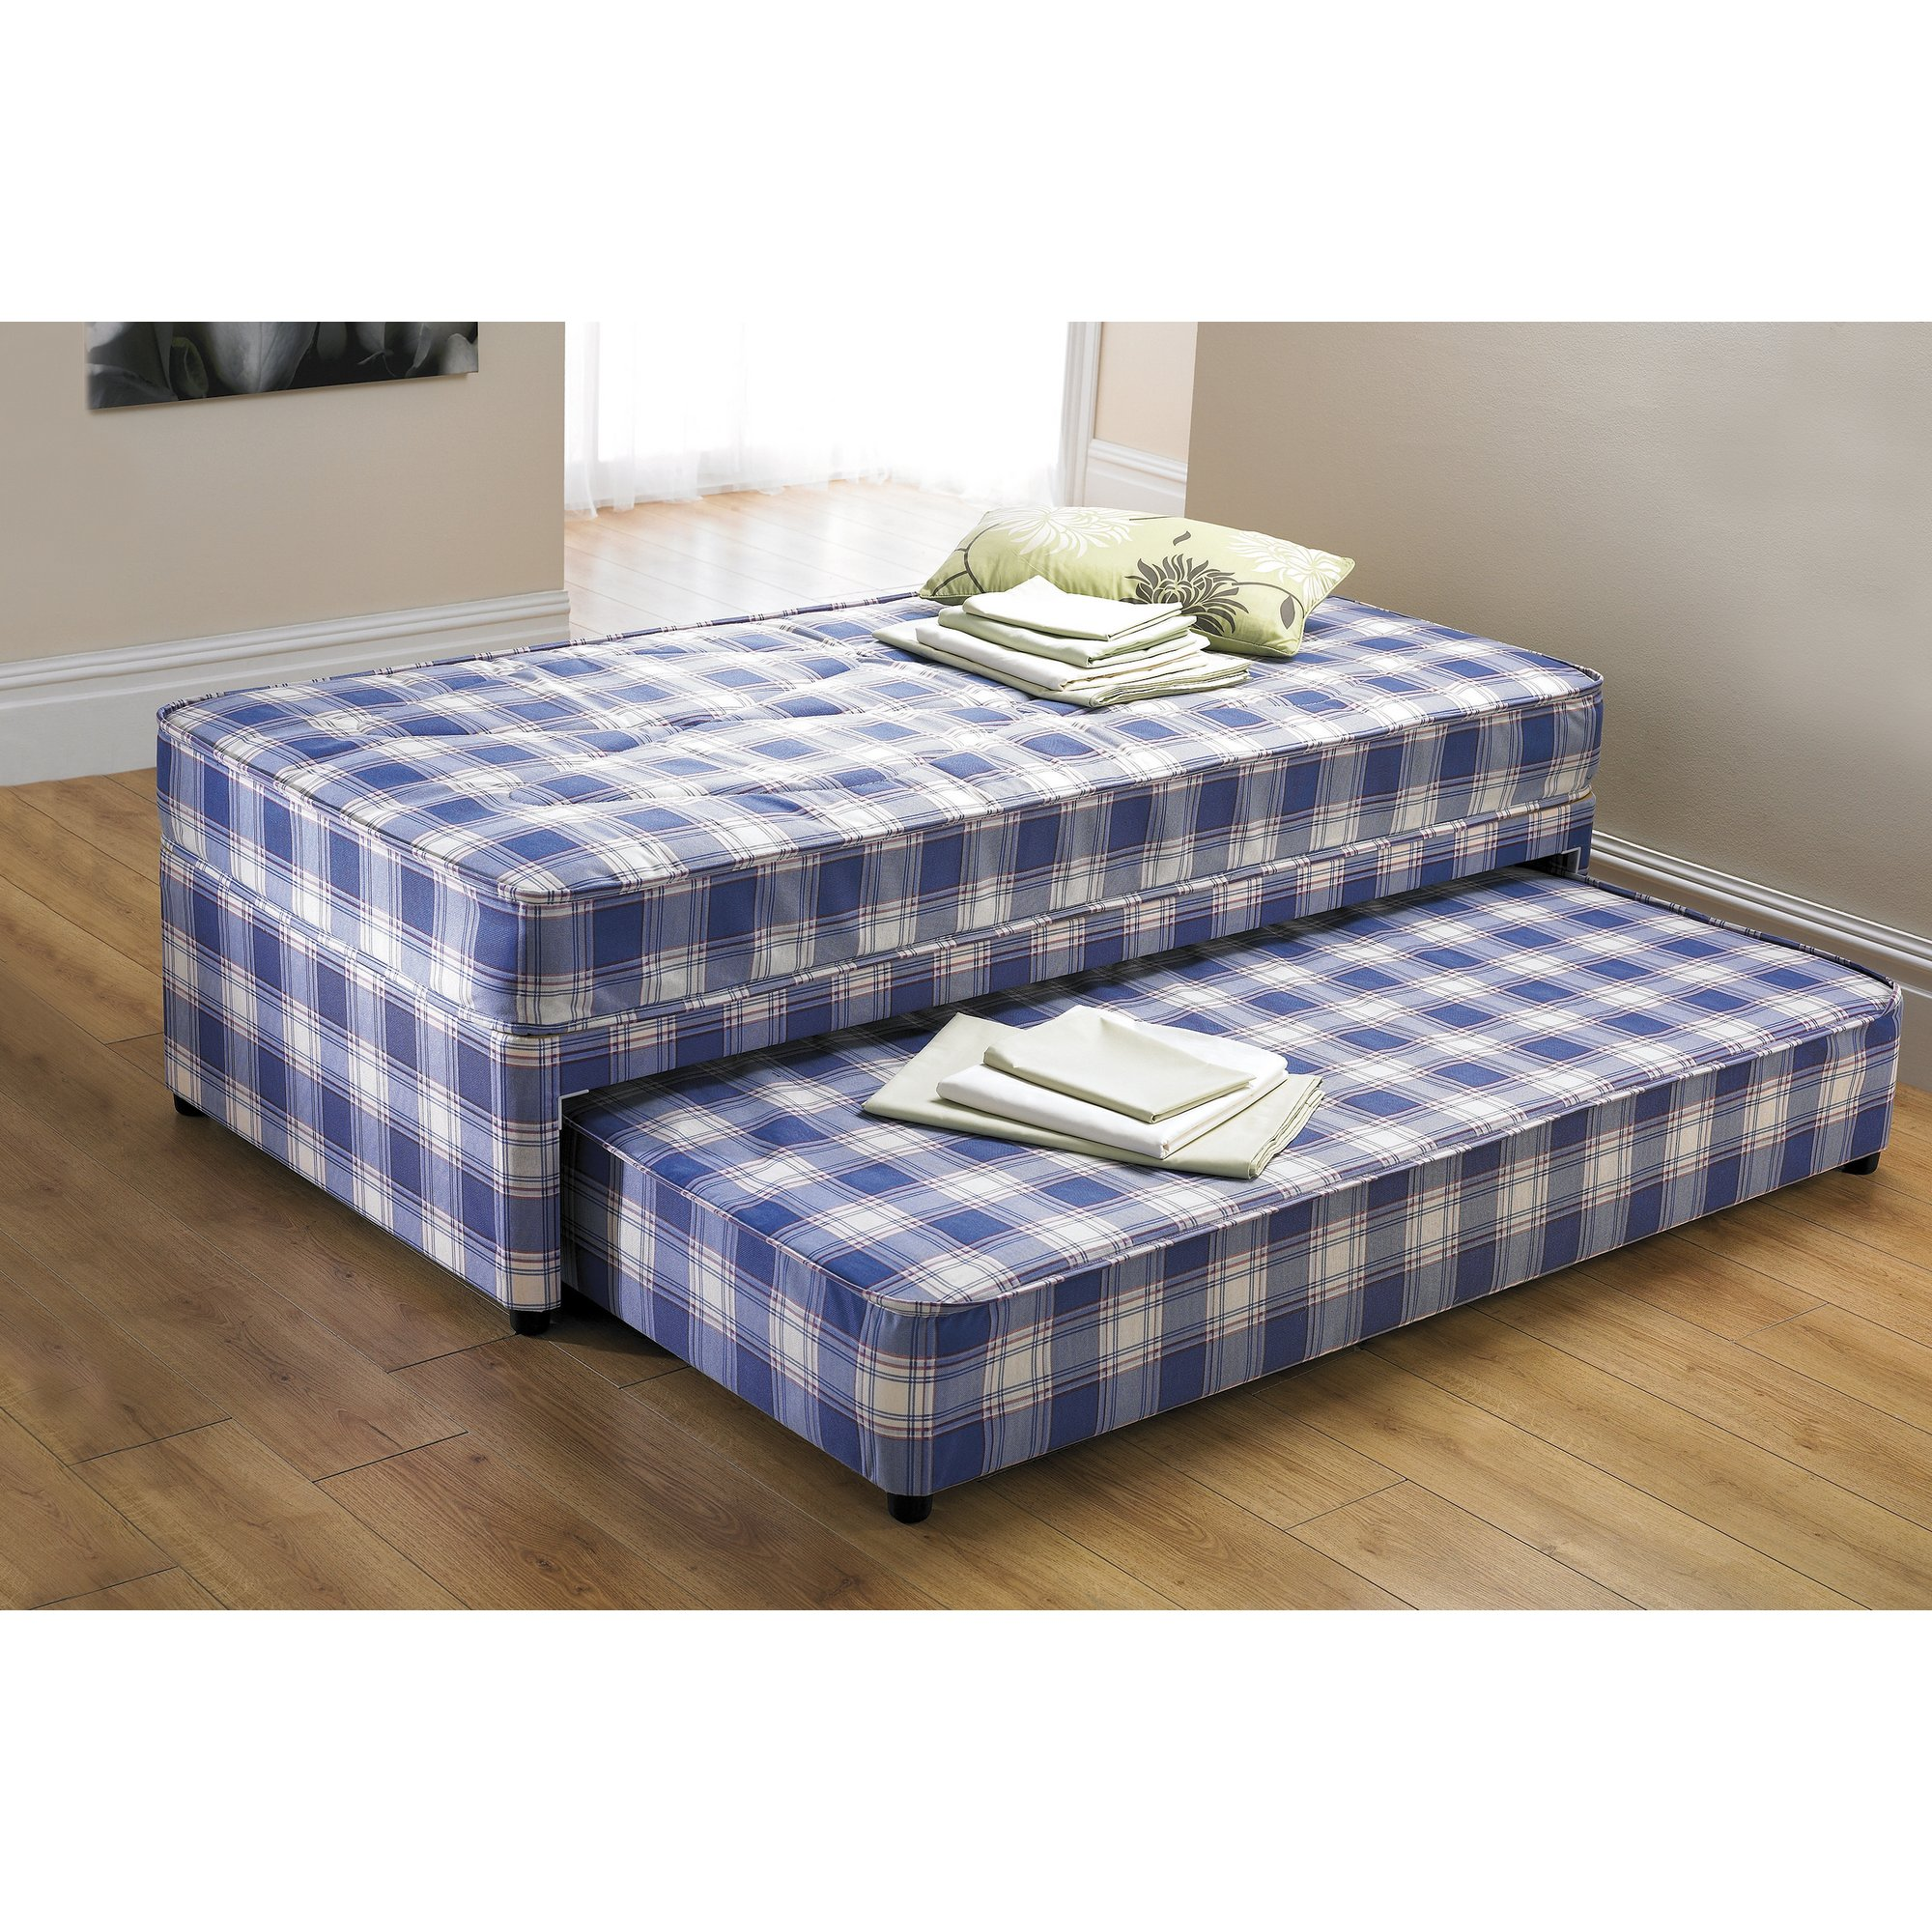 Image of Bed with Trundle Guest Bed